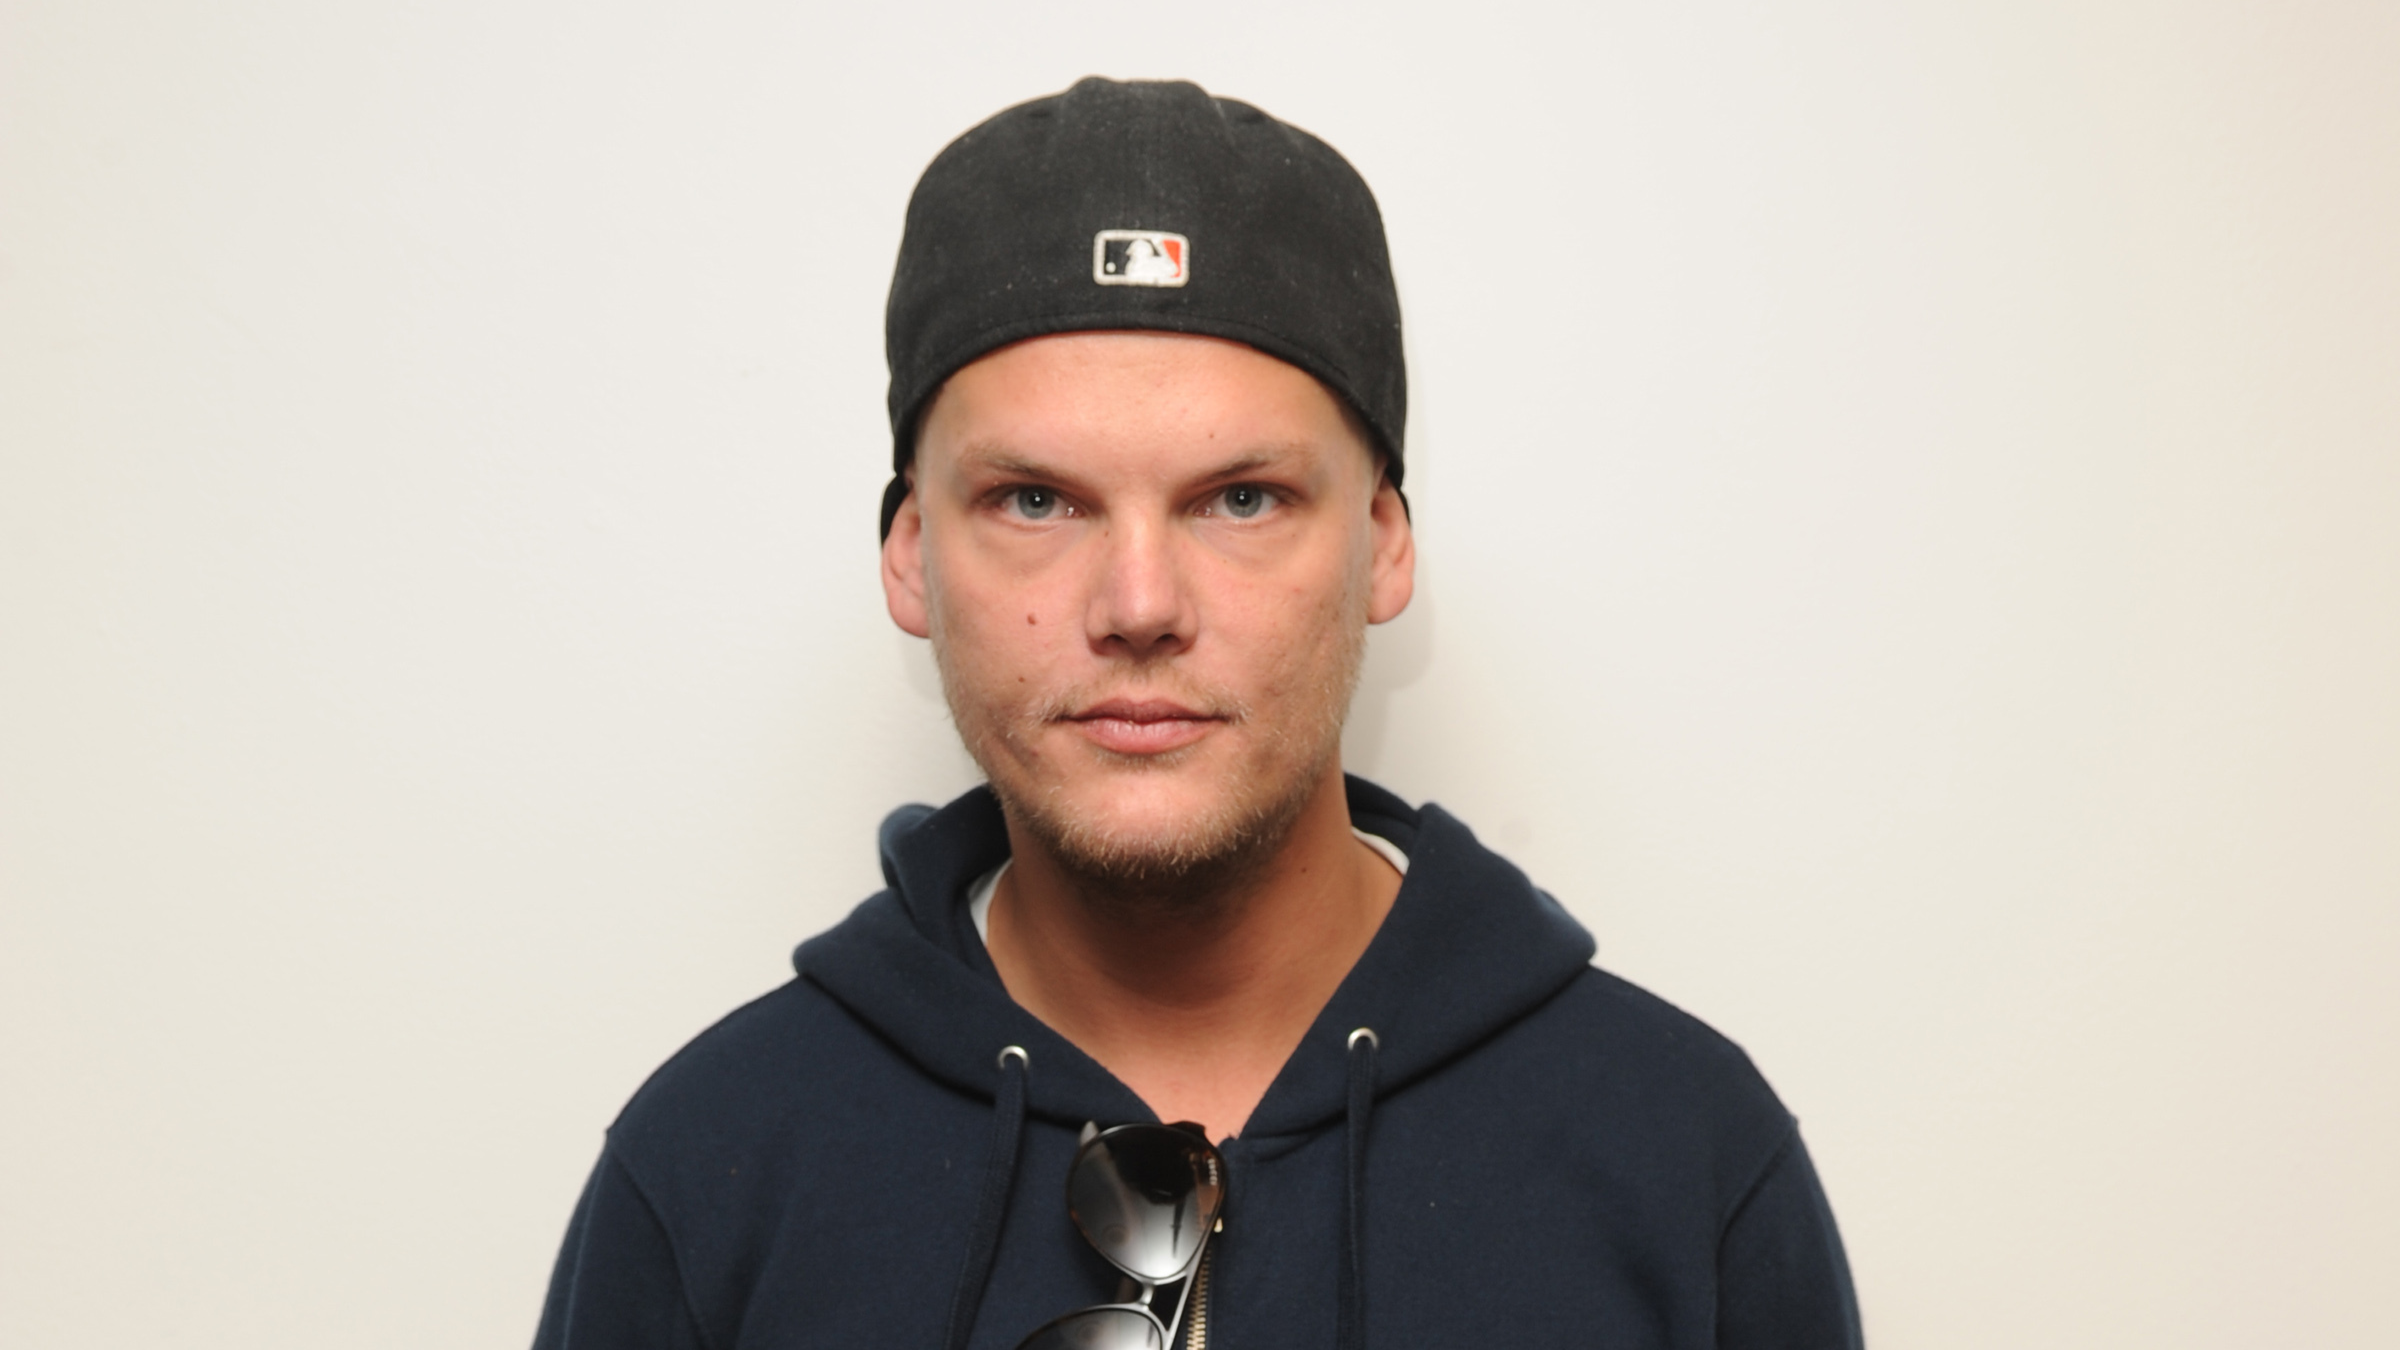 avicii s song wake me up is extra poignant following his death